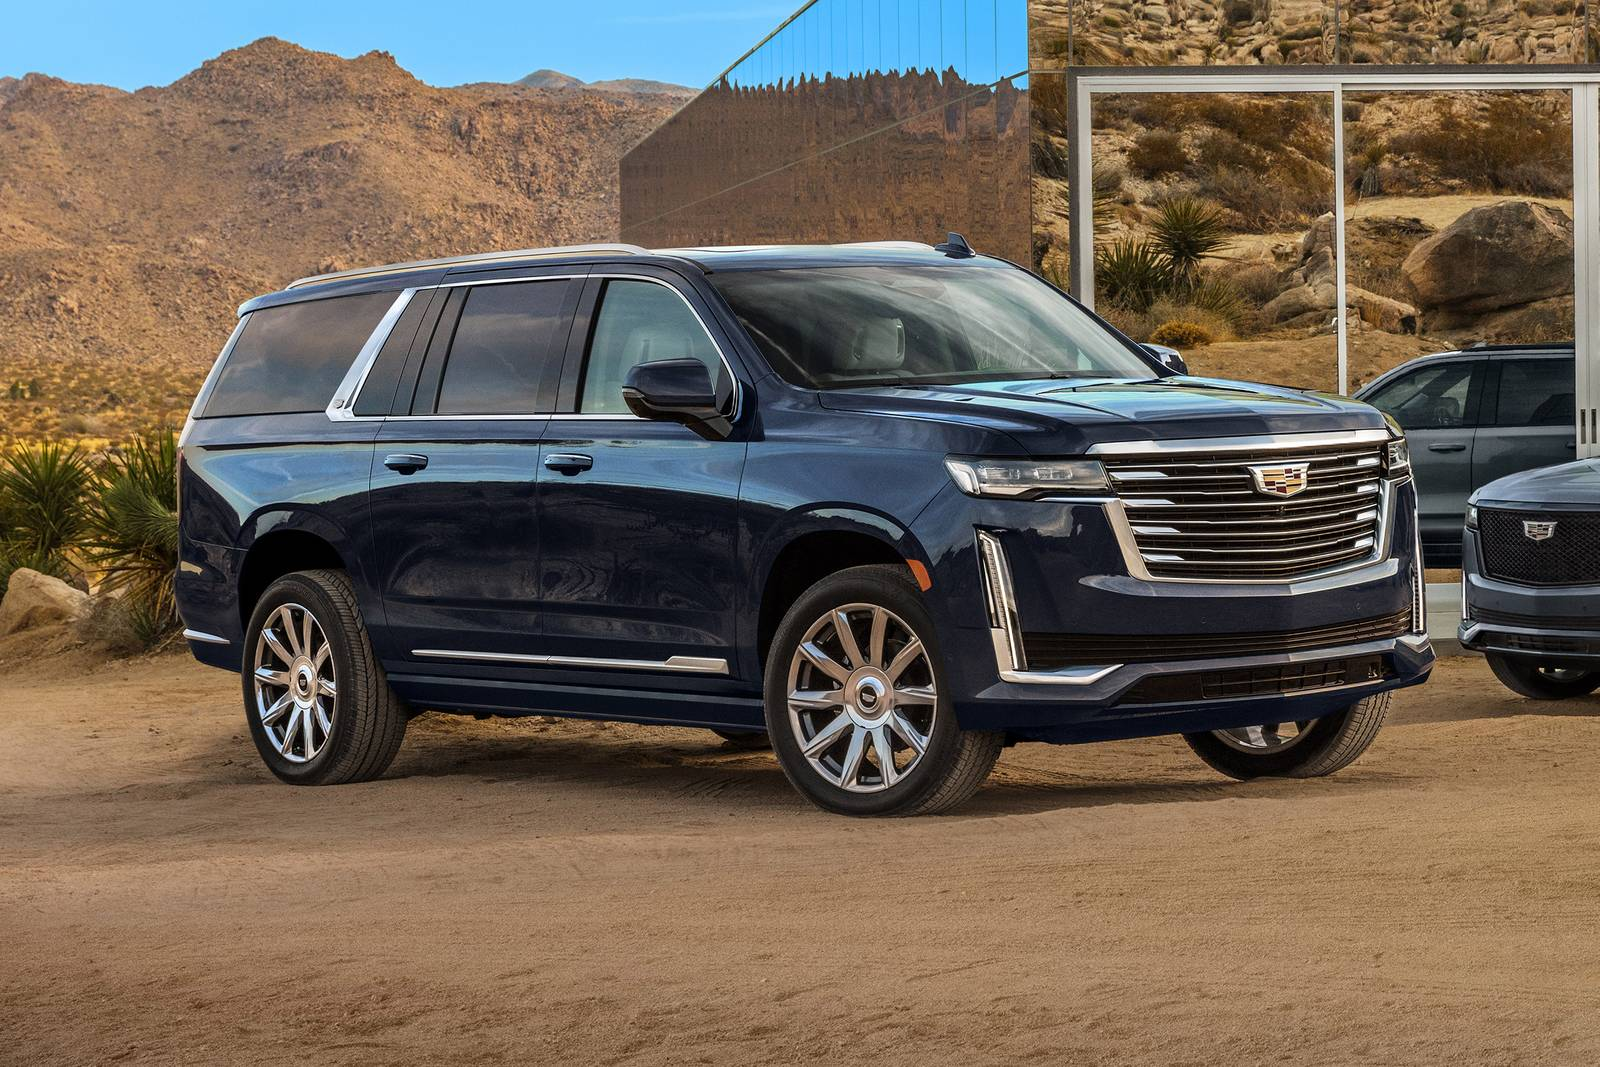 2021 Cadillac Escalade ESV SUV Price, Review, Ratings and ...